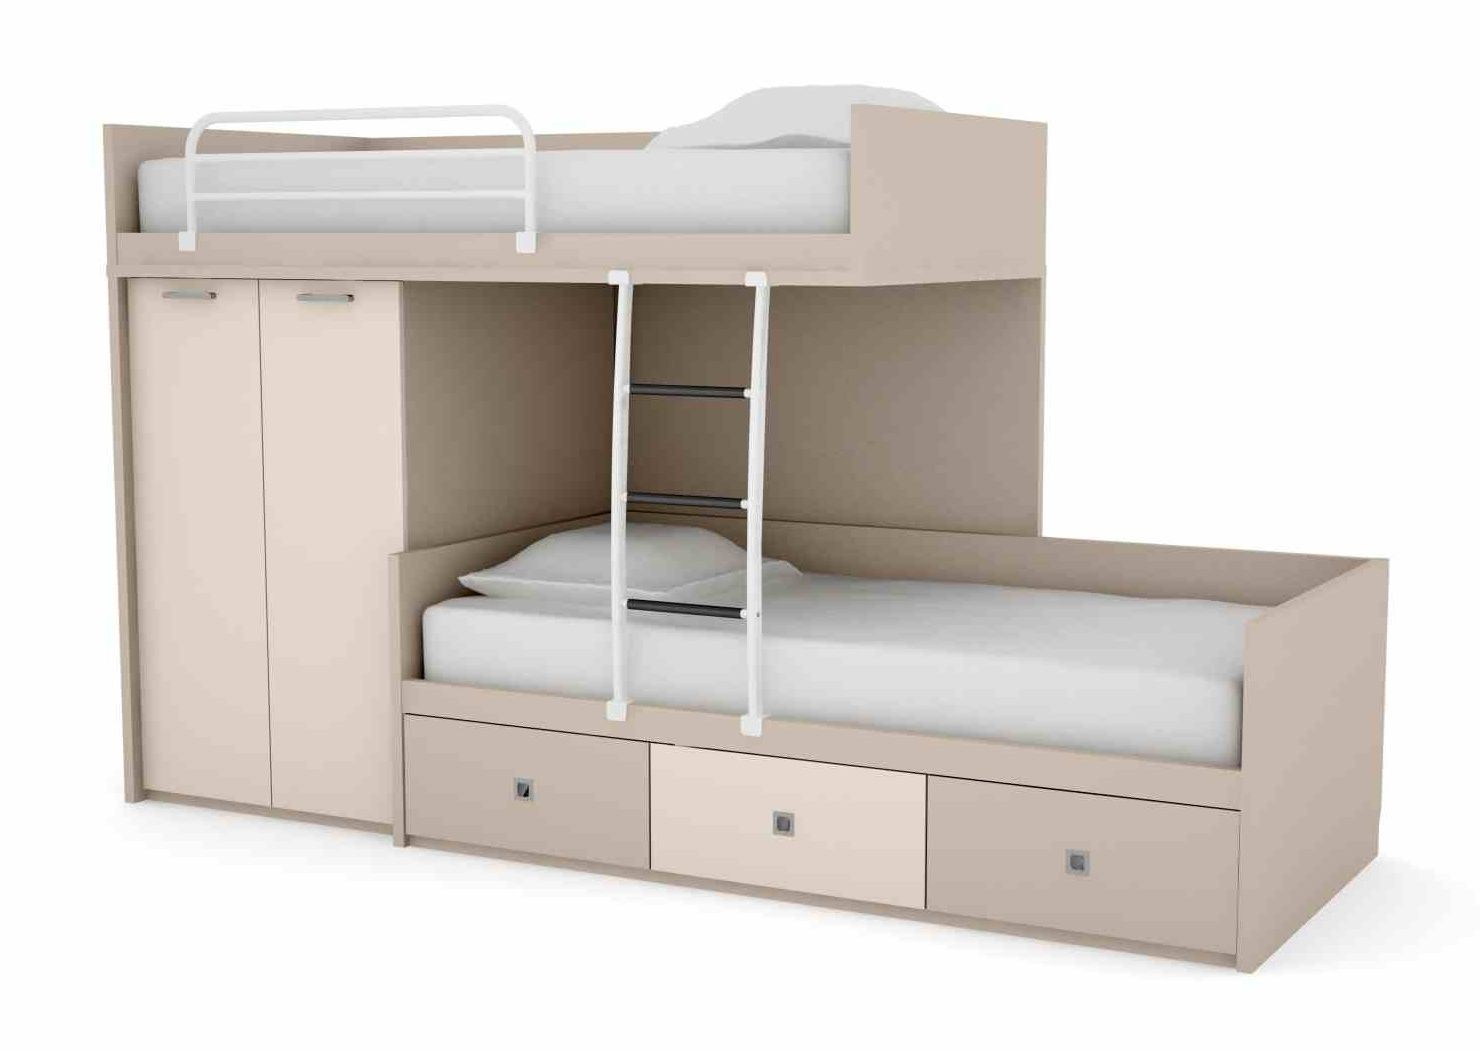 small space furniture uk. bed rails for loft funky bunk beds uk childrens storage small space furniture uk